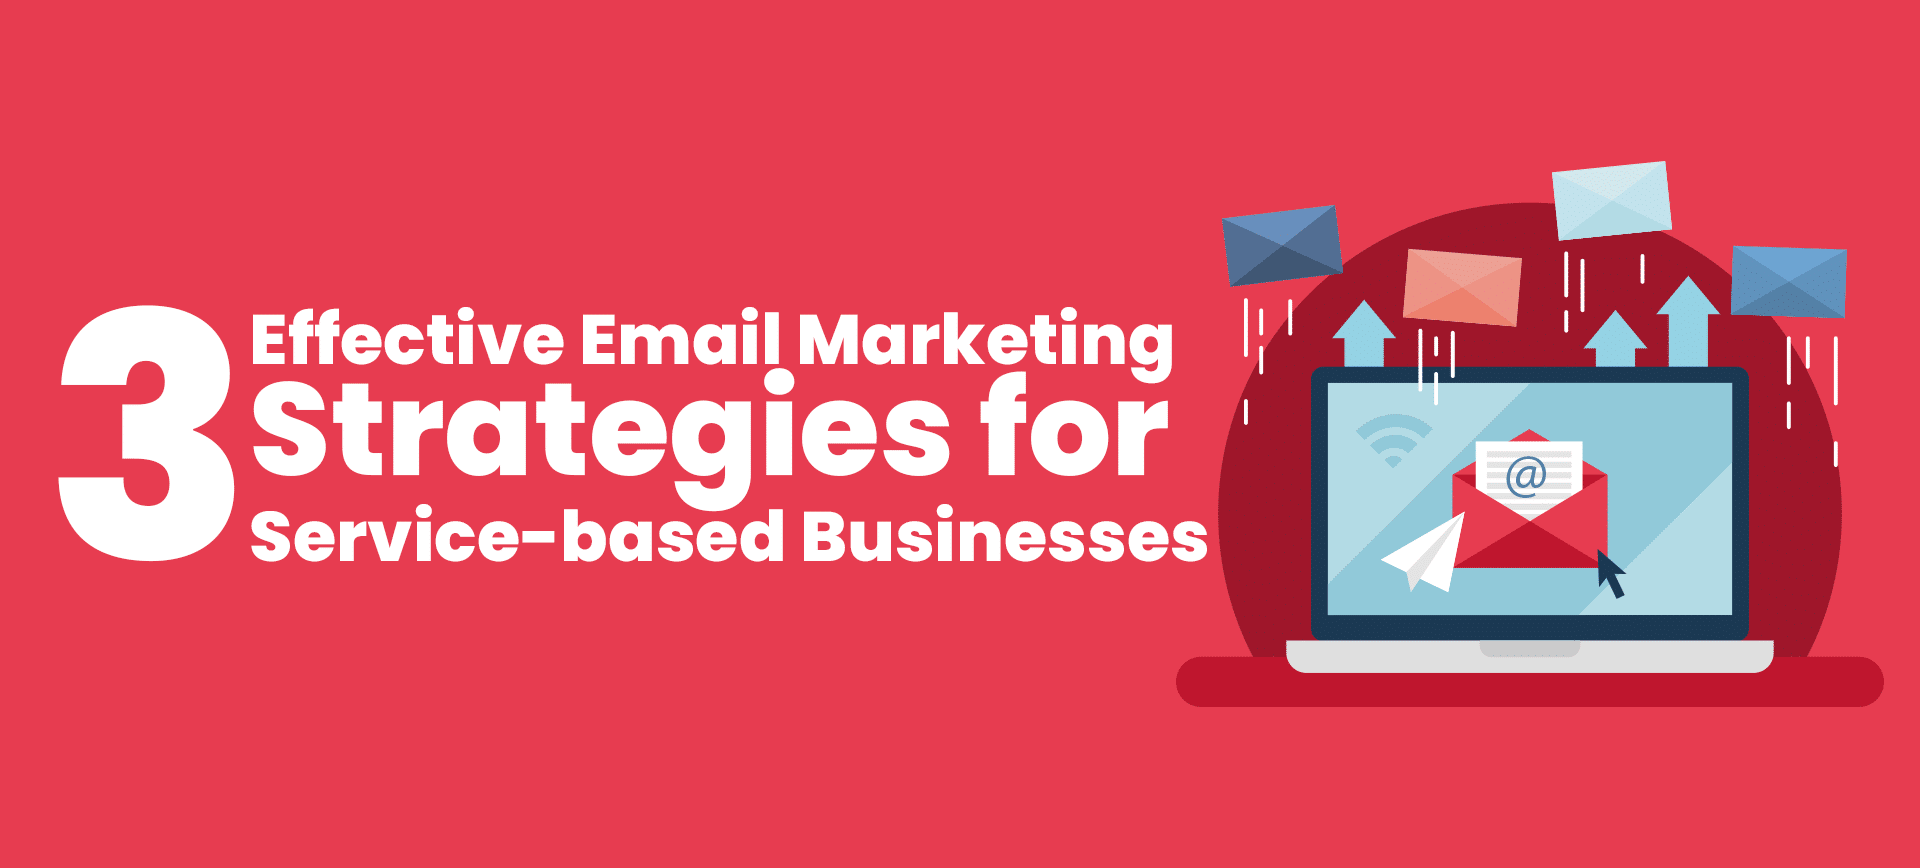 3 Effective Email Marketing Strategies for Service-based Businesses